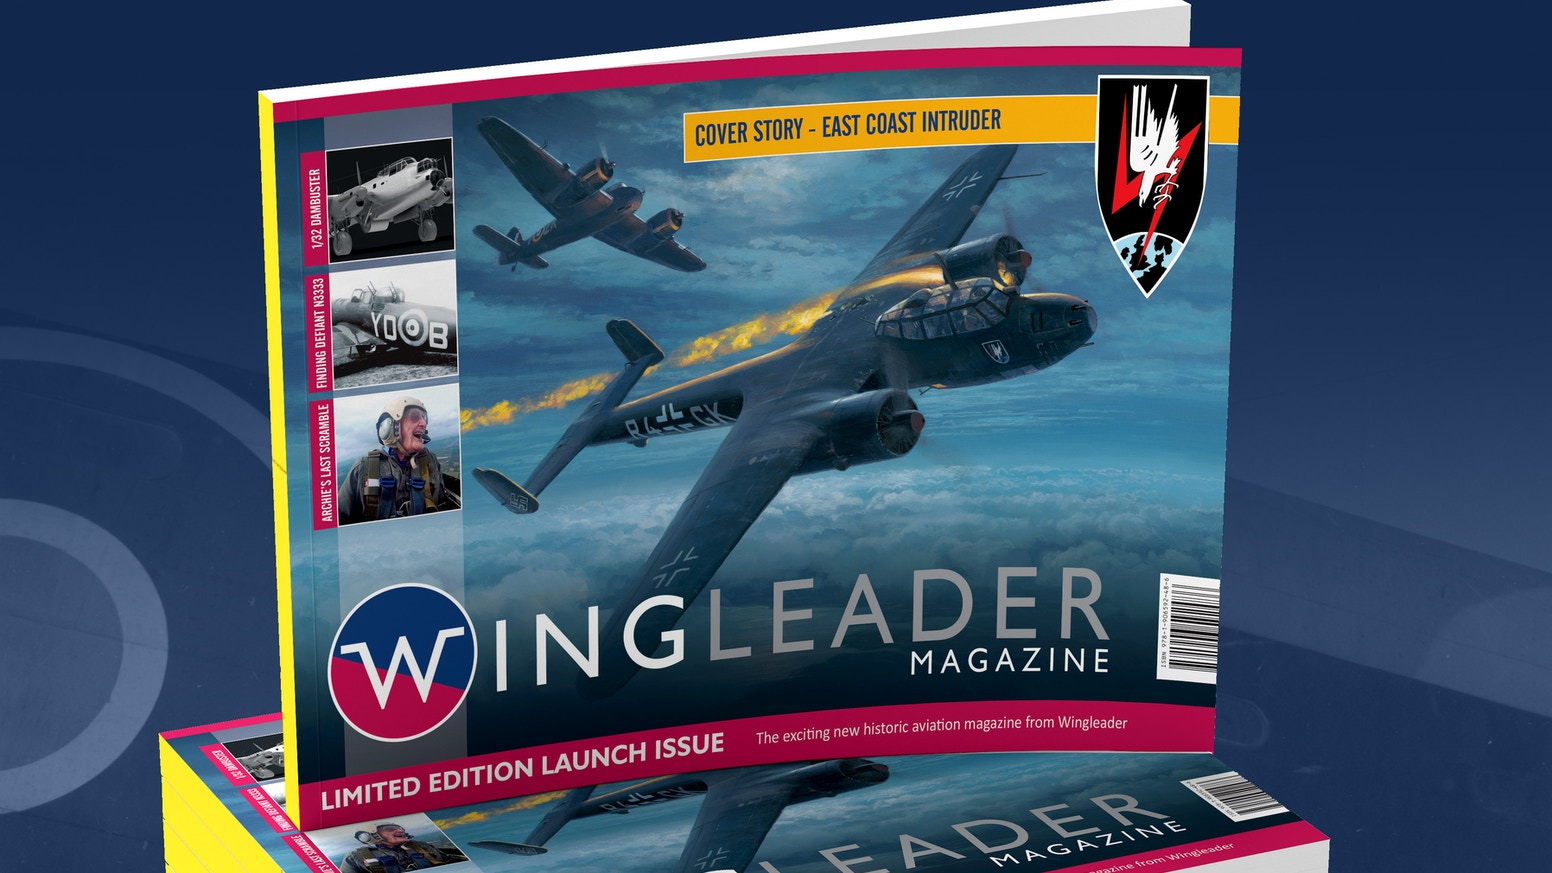 A brand new FREE historic aviation magazine for those who still run to the window when something flies over....